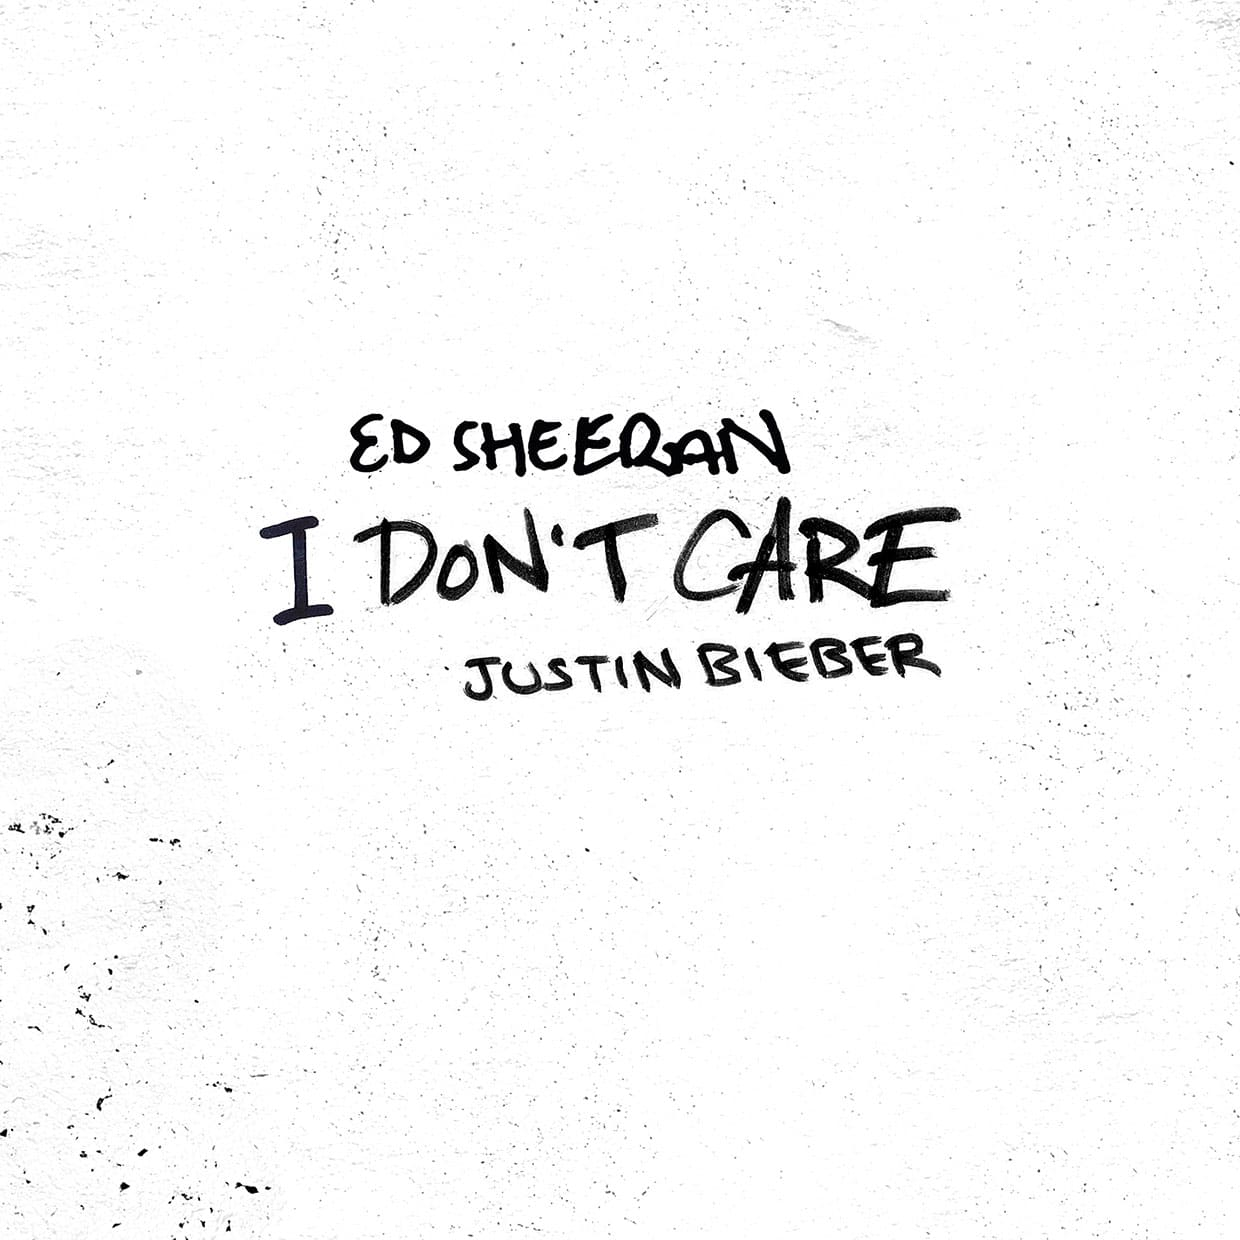 I Don't Care Justin Bieber Ed Sheeran